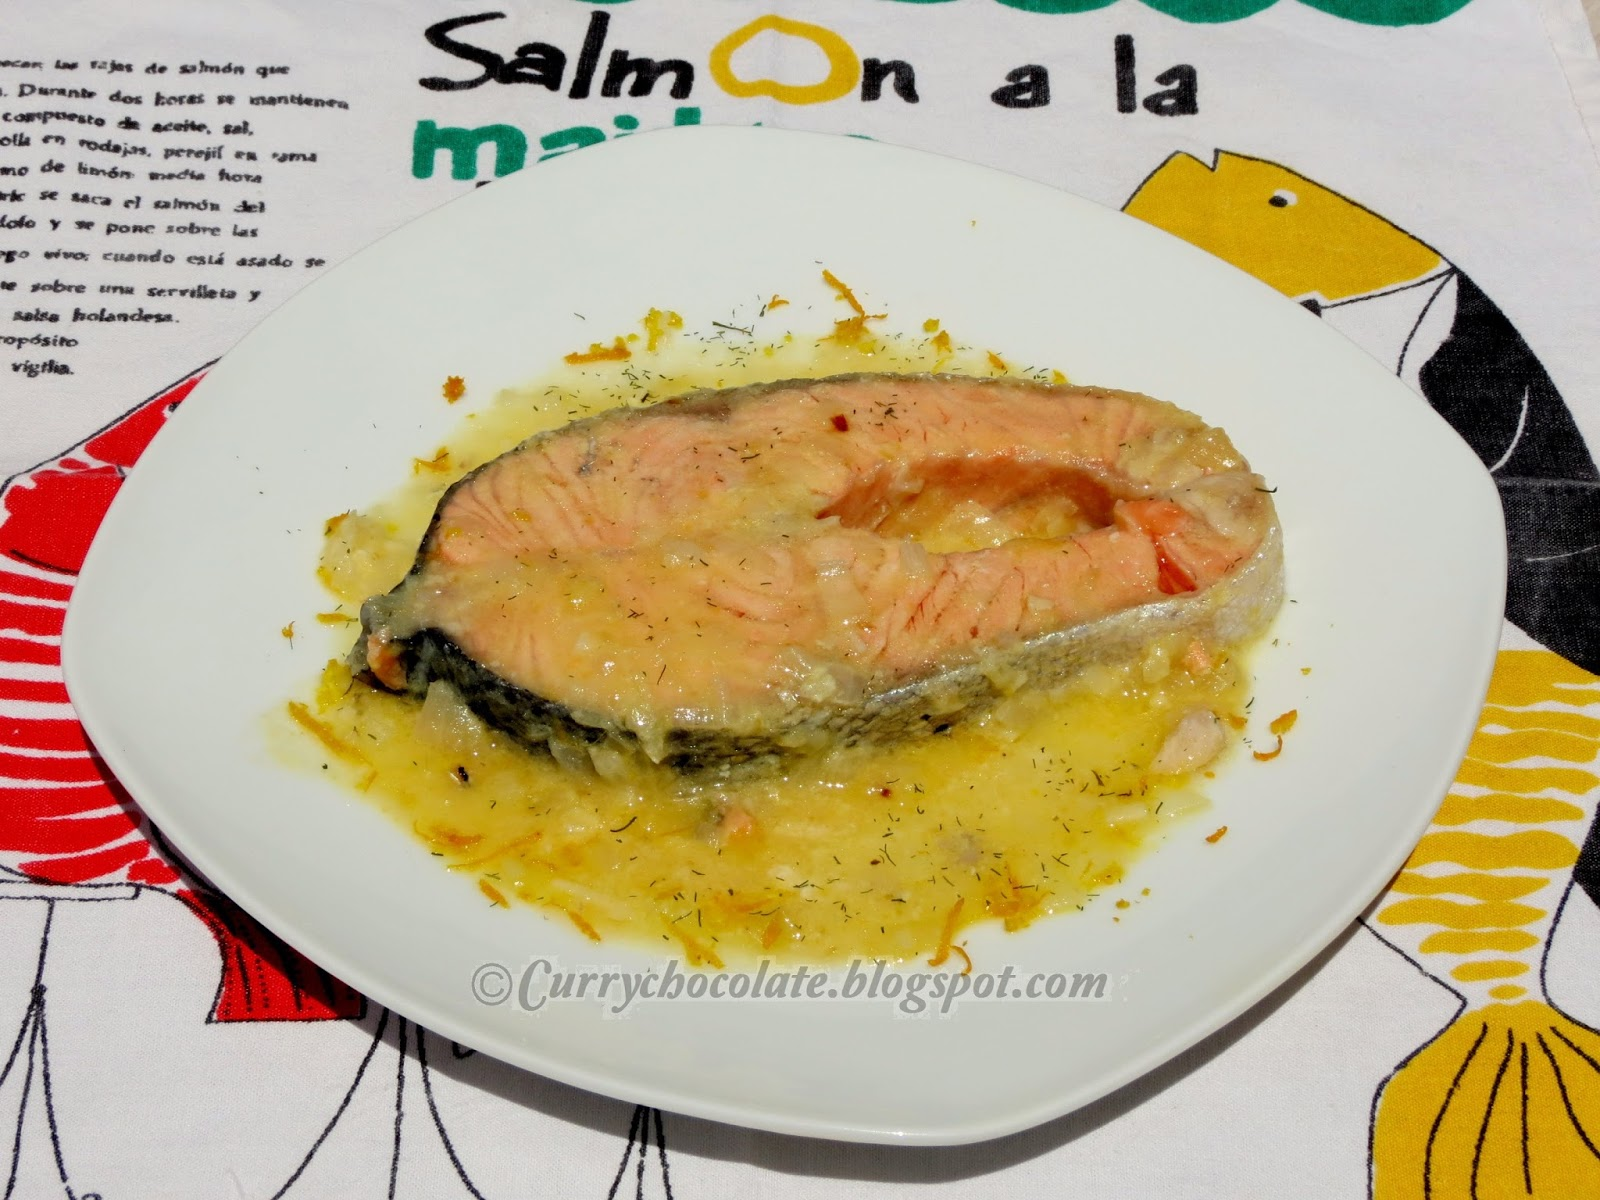 Salmón con salsa de naranja y limón - Salmon with orange and lemon ...